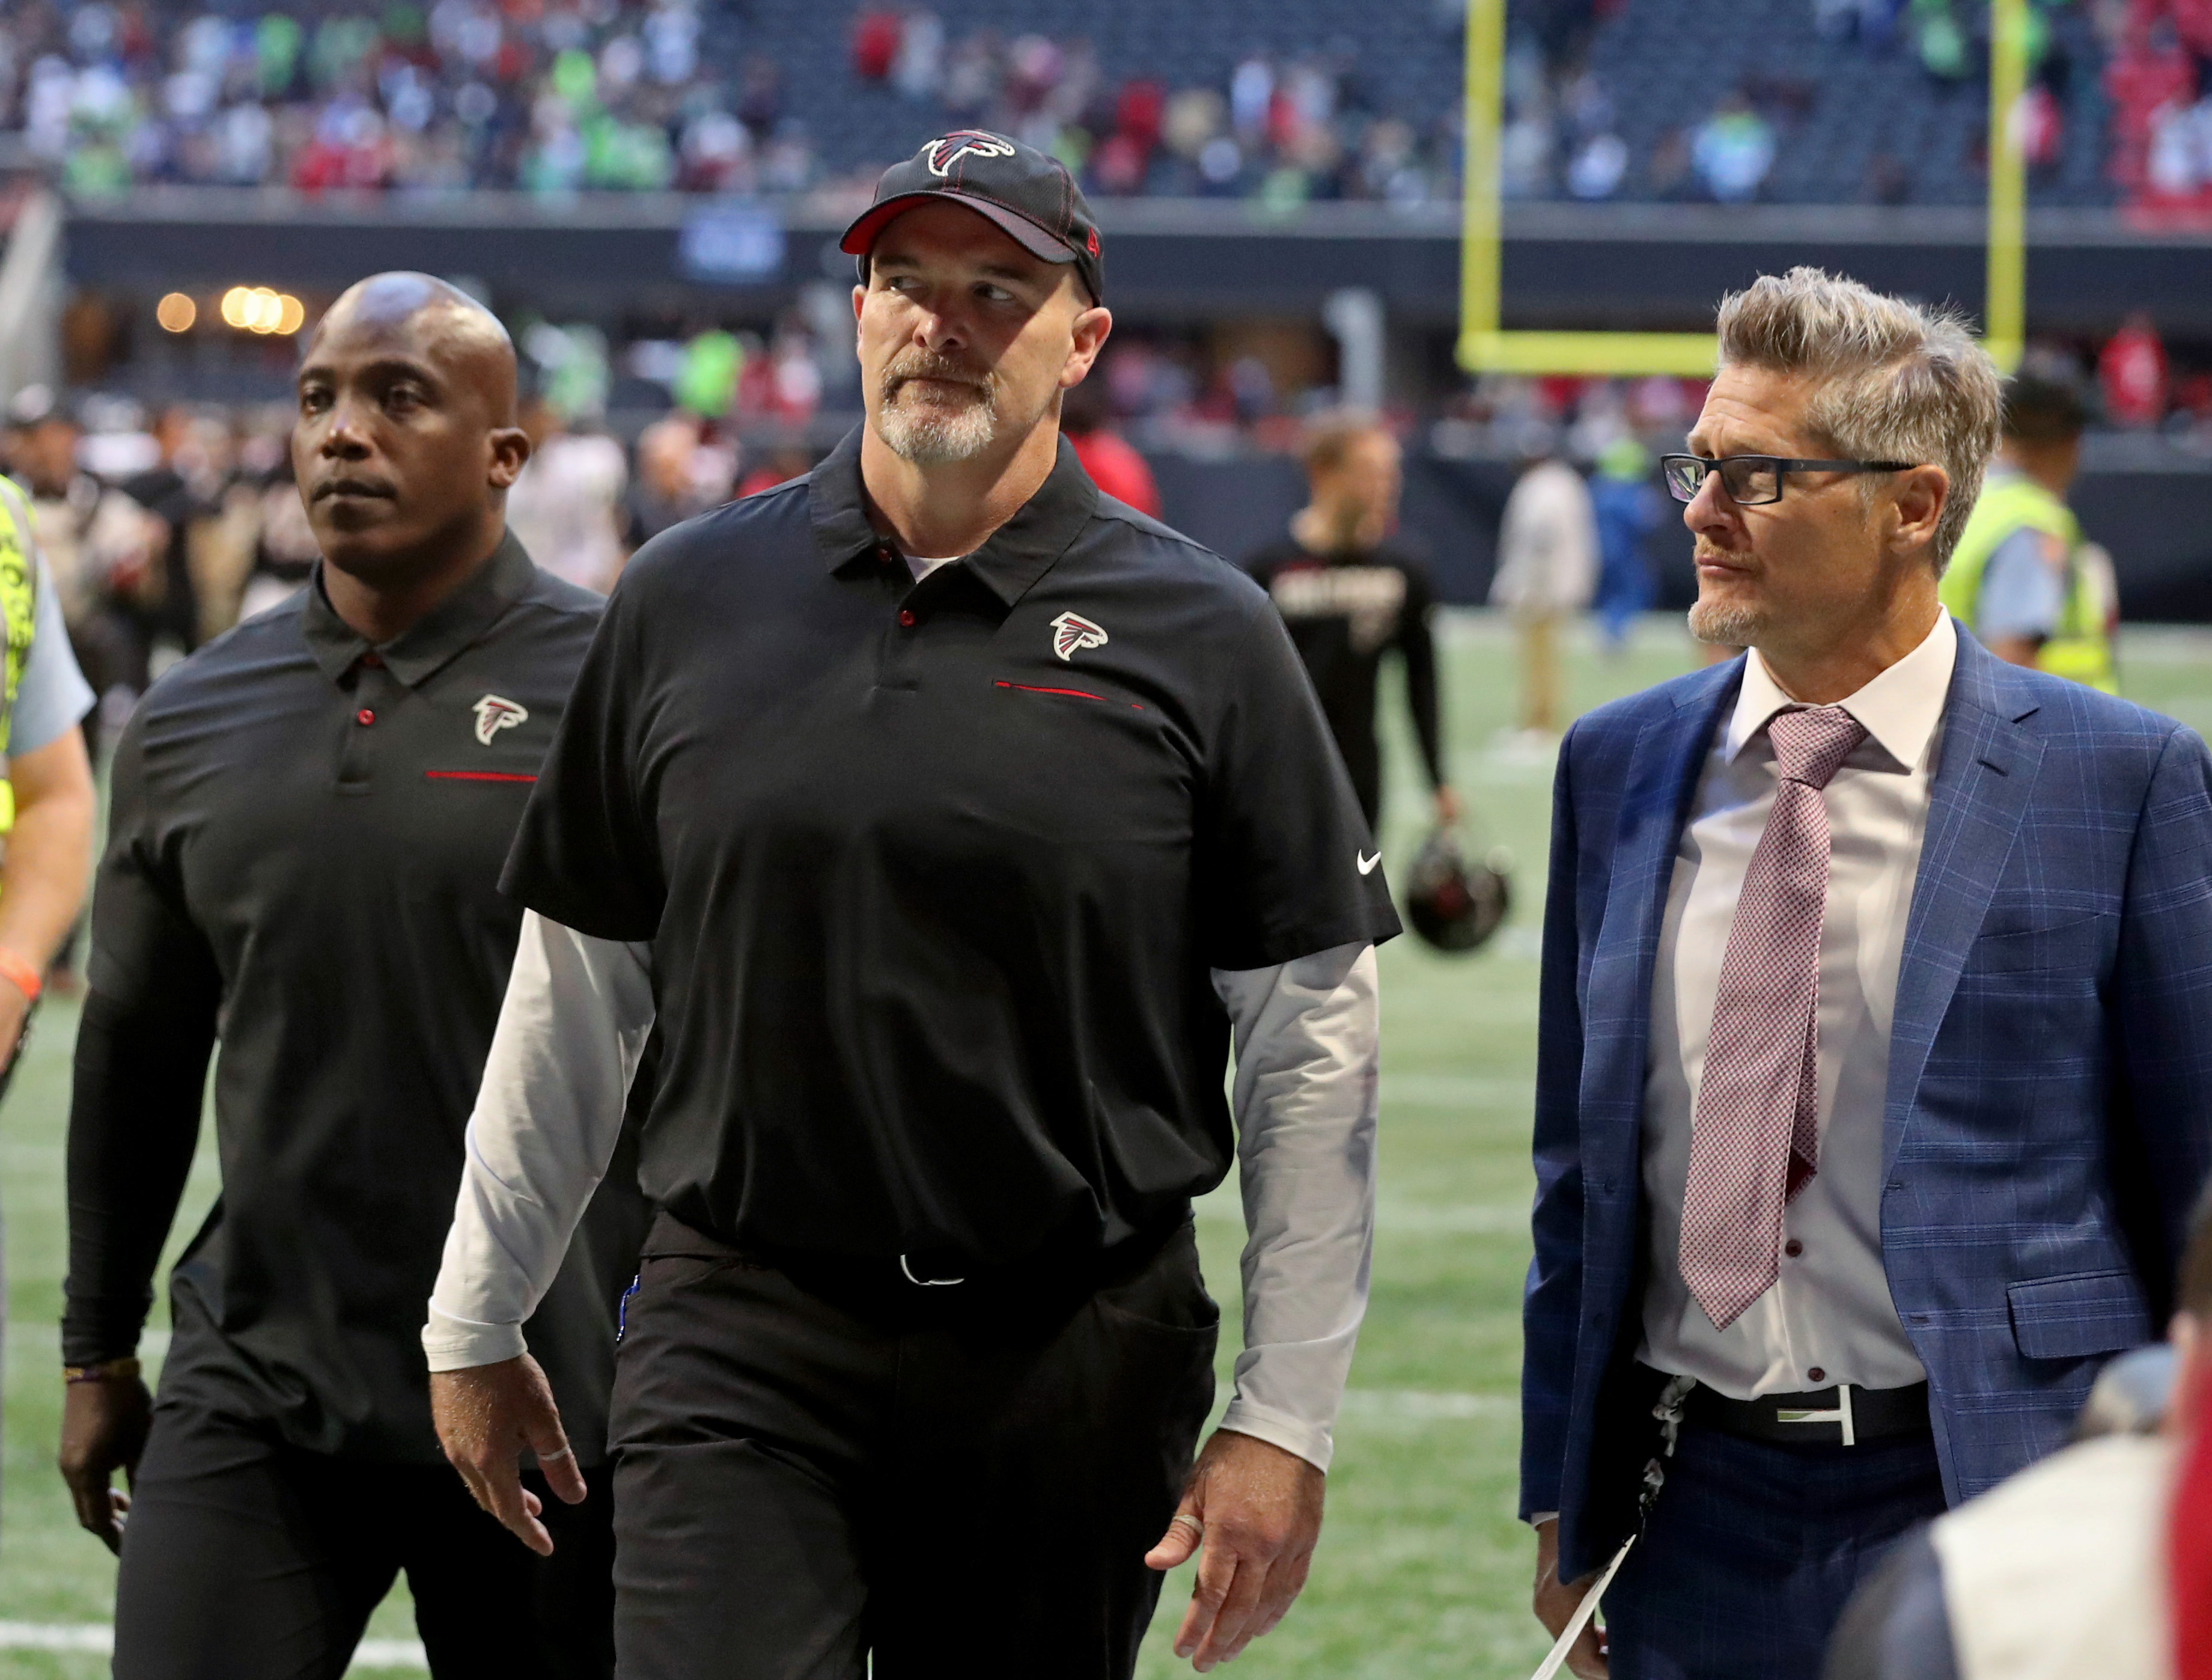 Falcons announce coach Dan Quinn and GM Thomas Dimitroff will return in 2020